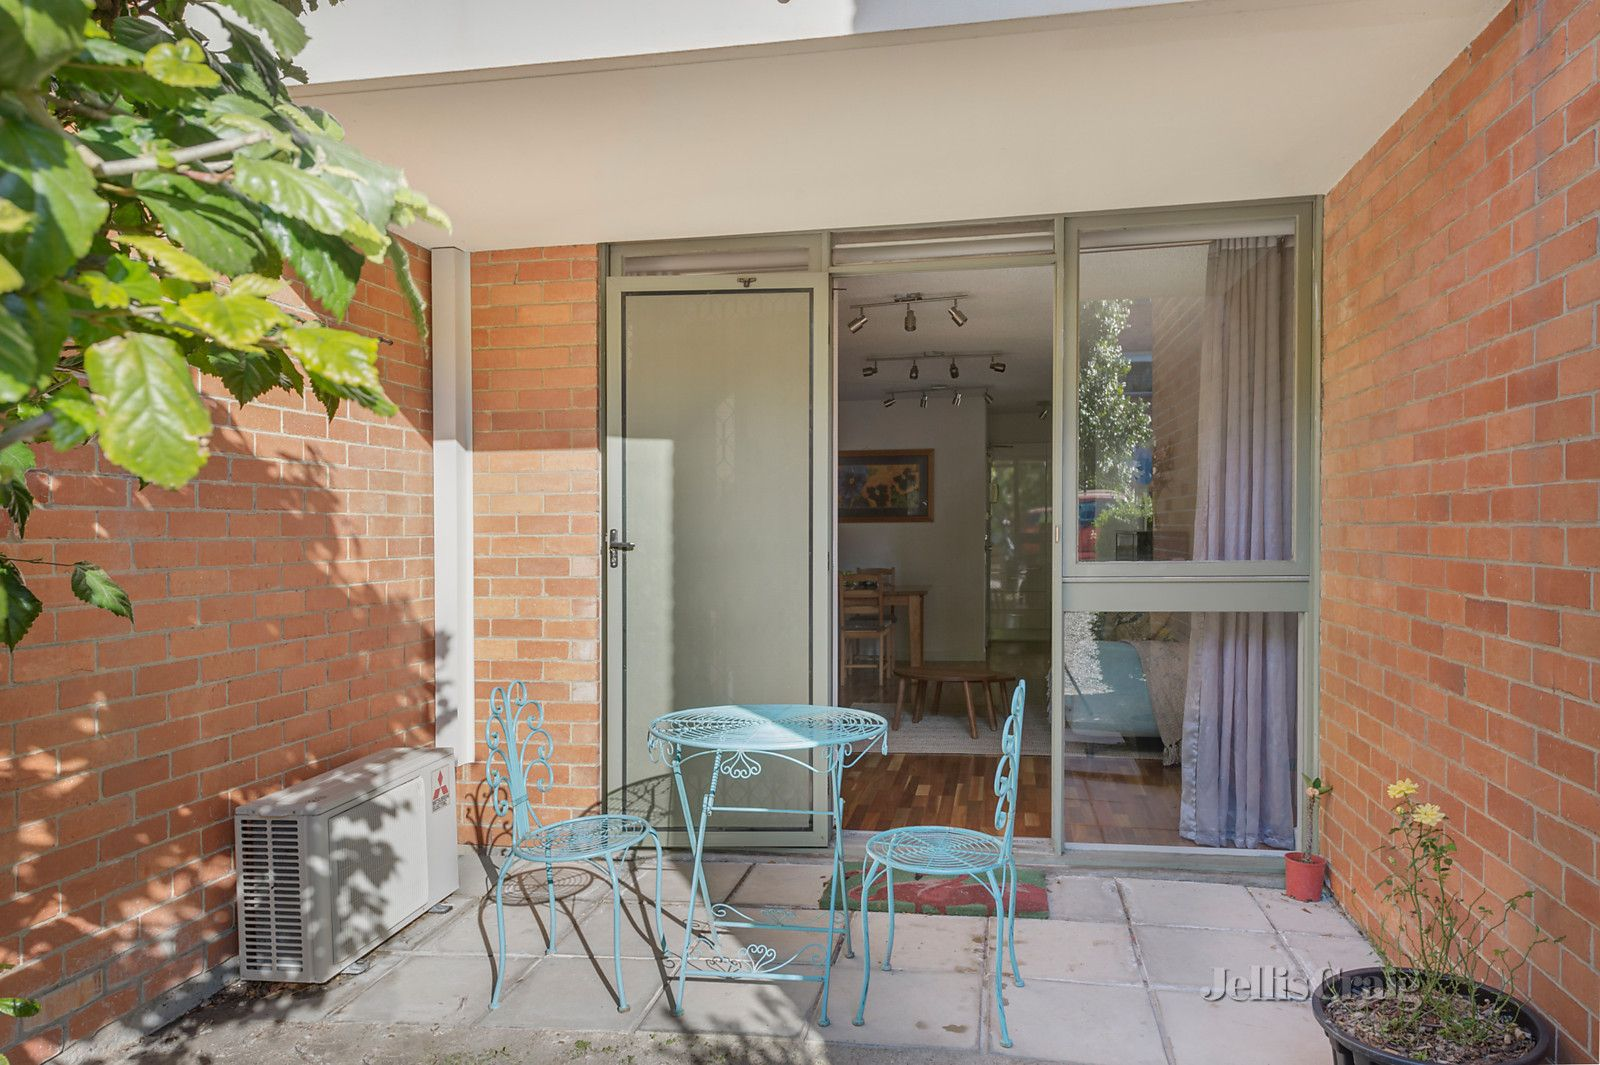 3/76 Haines Street, North Melbourne VIC 3051, Image 0